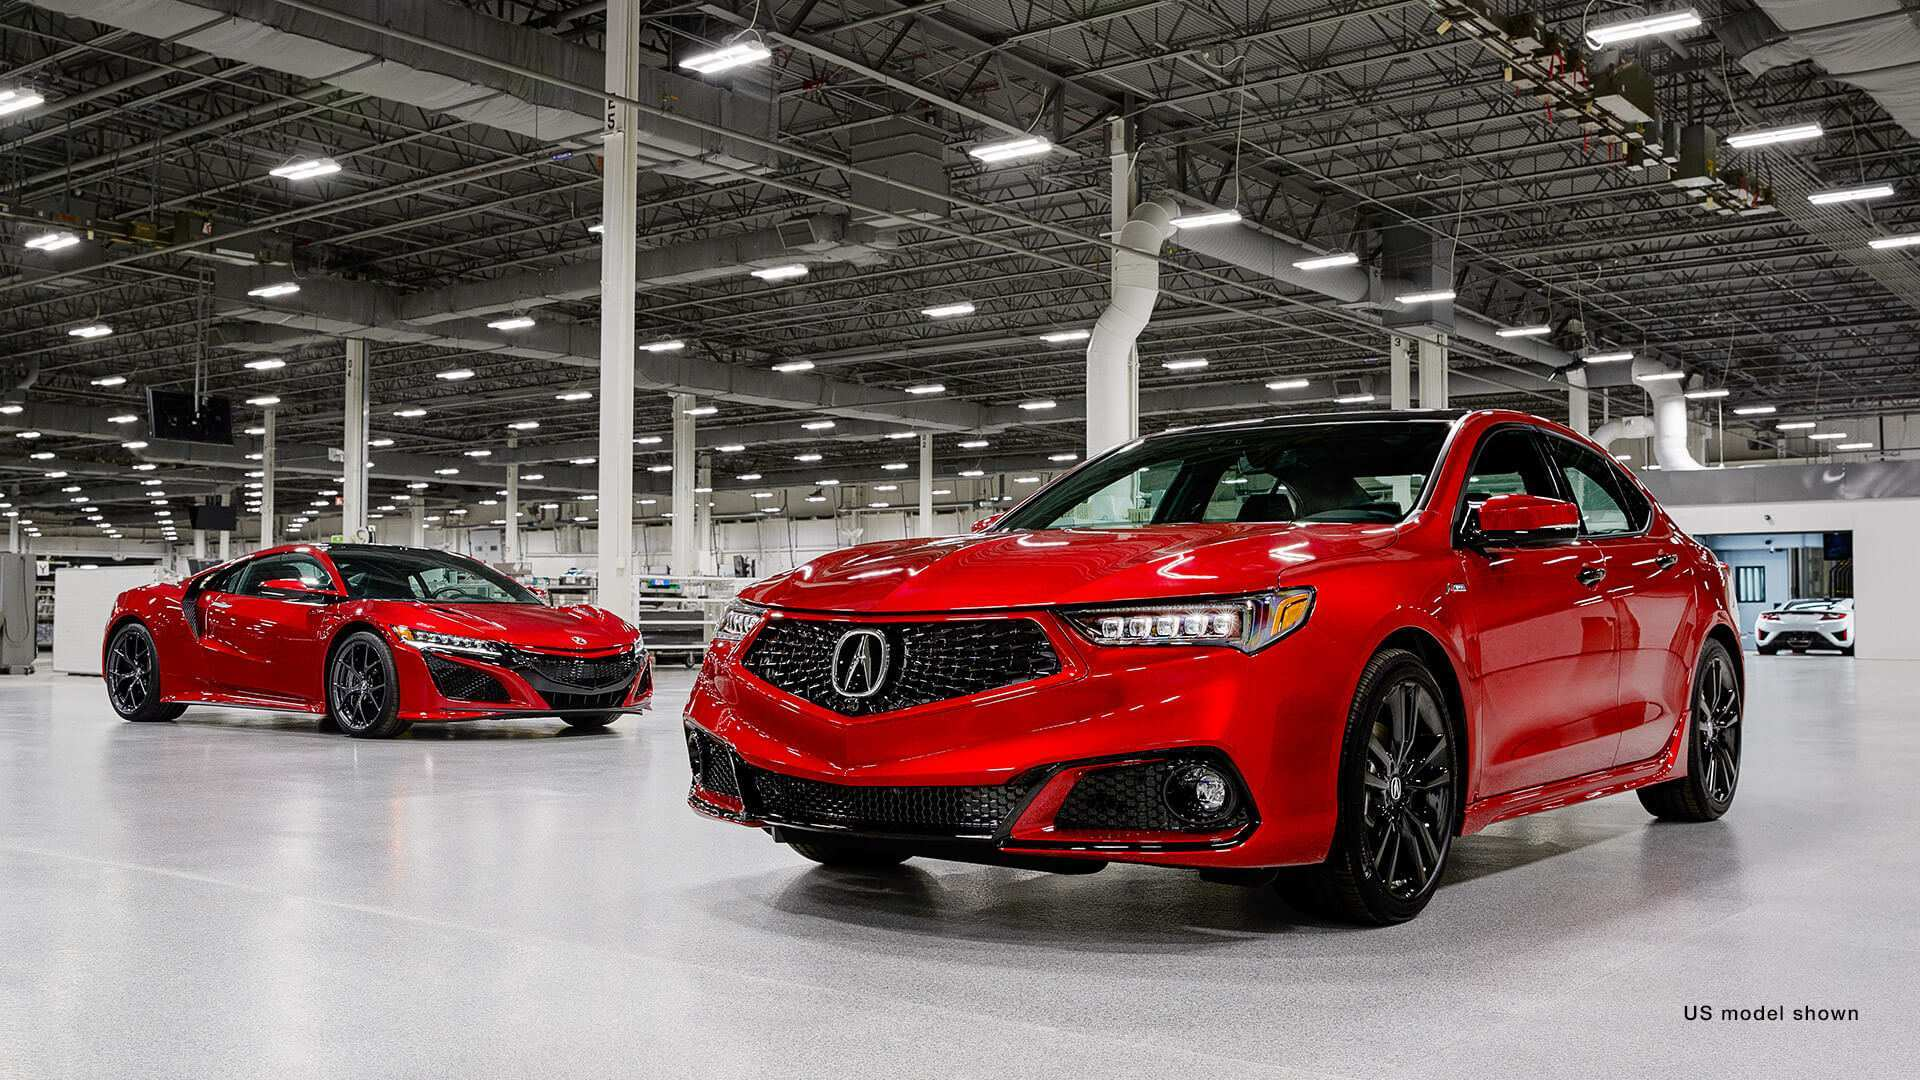 81 New Acura Lineup 2020 Images with Acura Lineup 2020